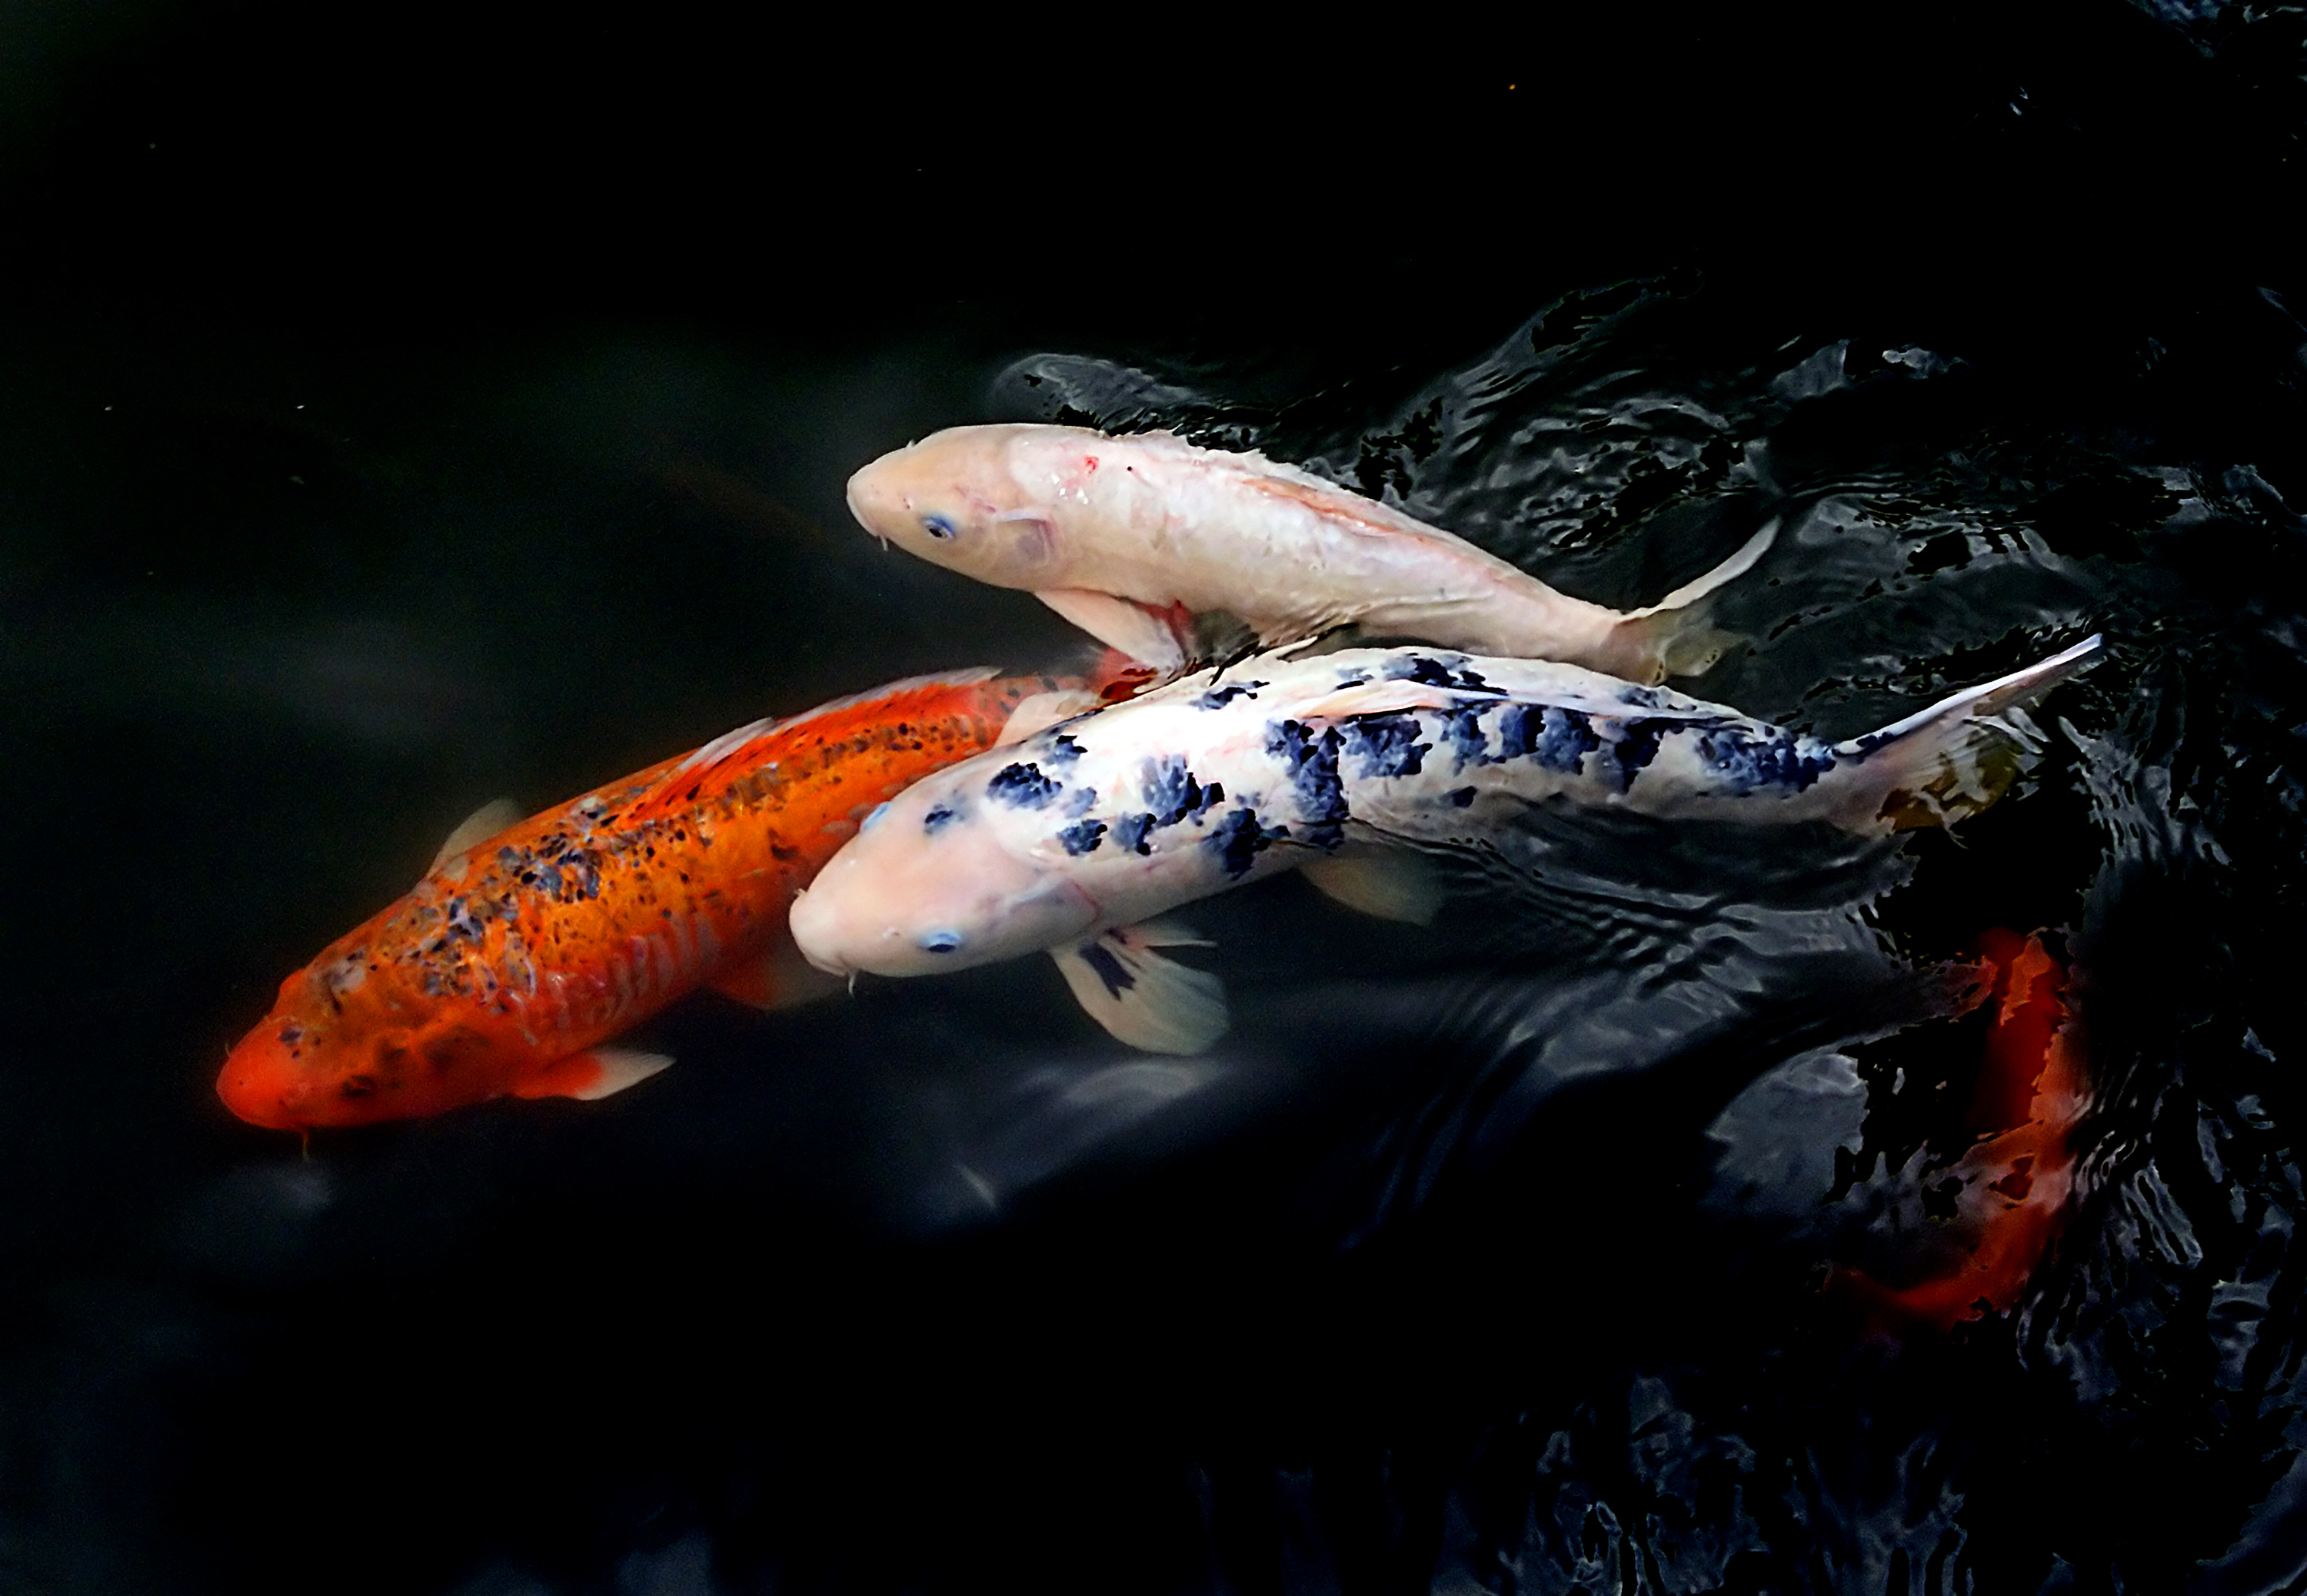 66174 download wallpaper Animals, Water, Fishes, Ripples, Ripple, Koi Fish screensavers and pictures for free